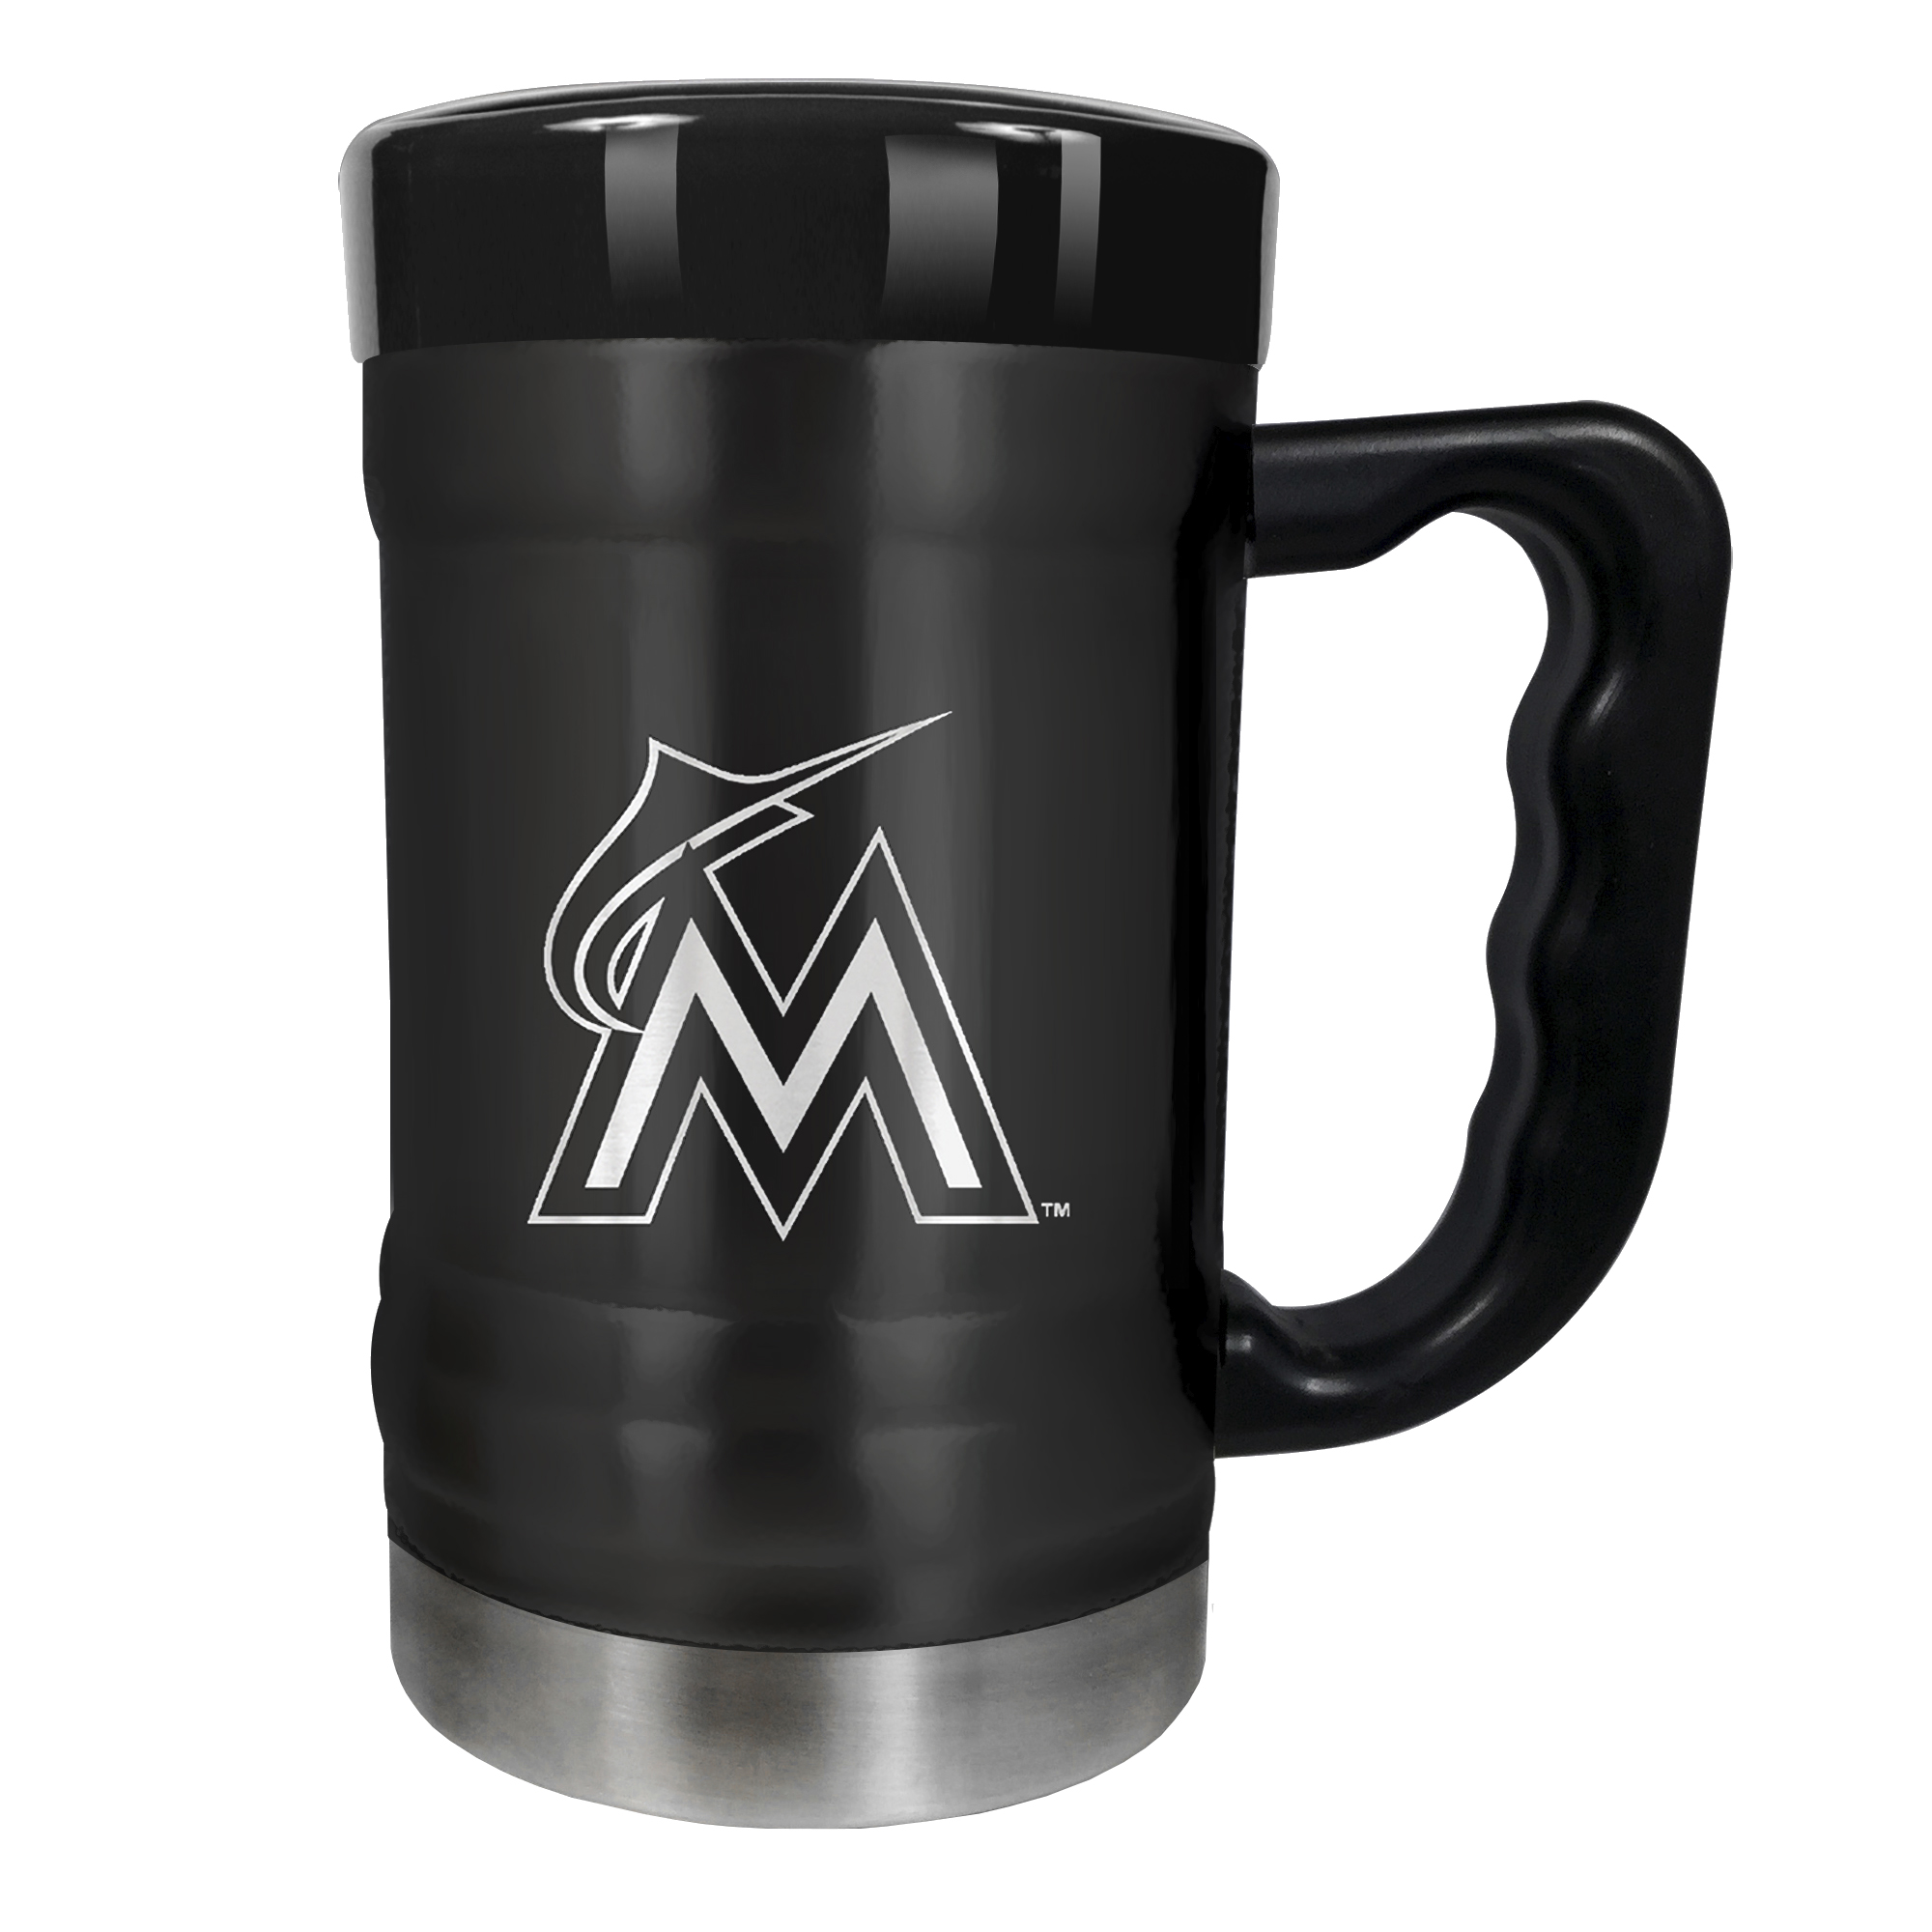 Miami Marlins 15oz. Stealth Coach Coffee Mug - Black - No Size